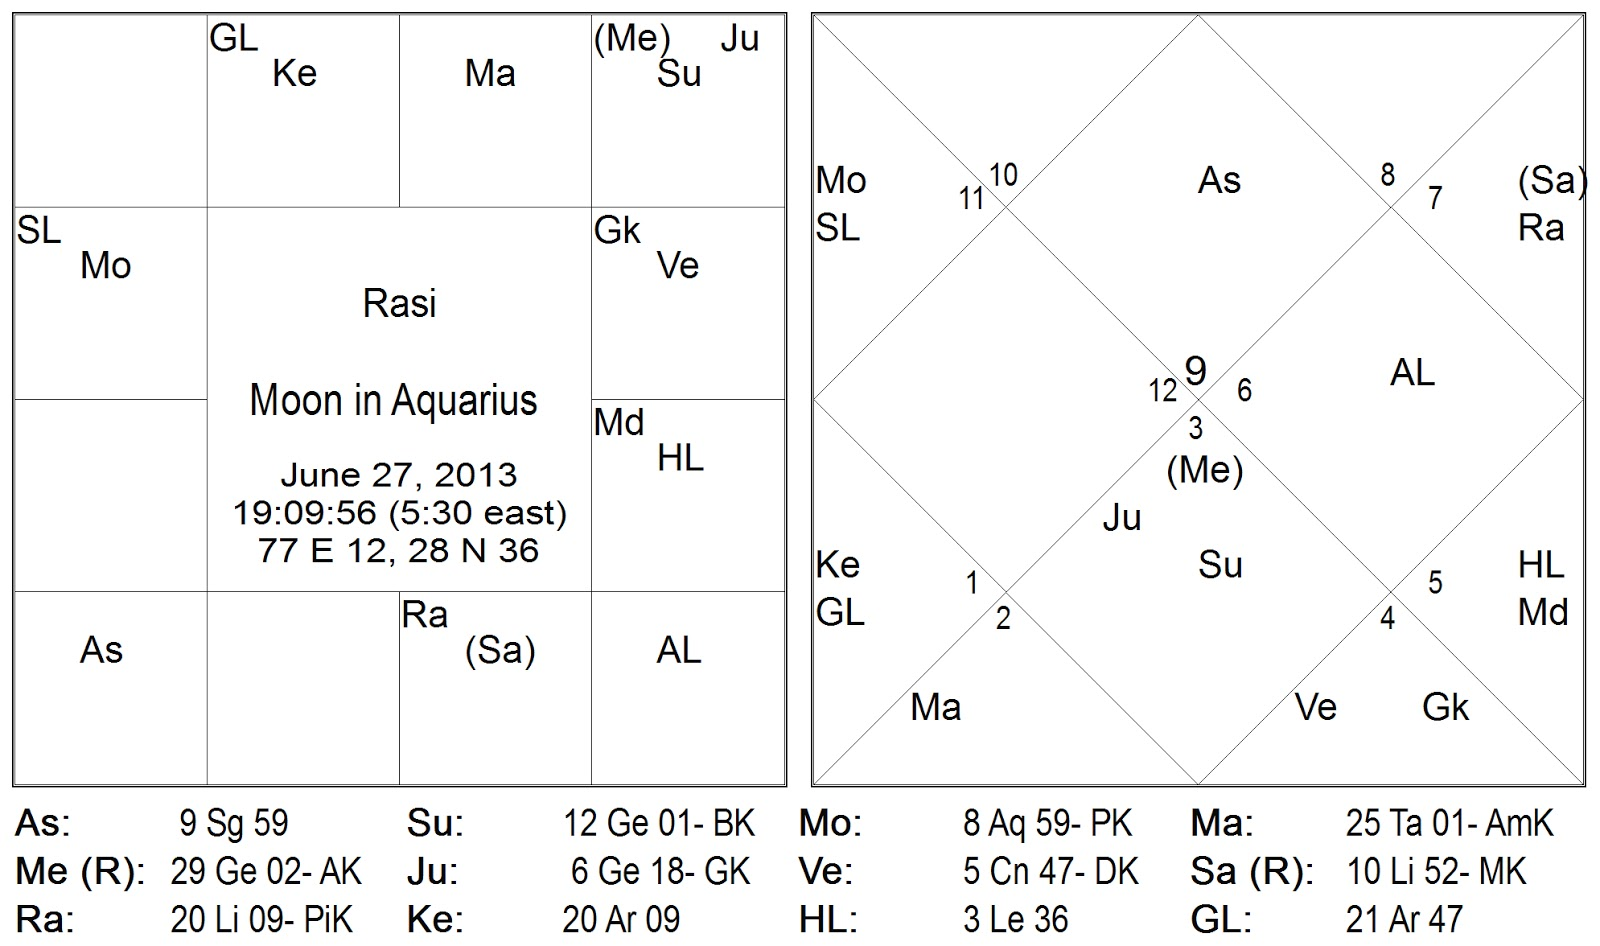 Now aquarius has a lot of width and consequently a lot of scope for instruction active instruction during this transit of the vedic moon is coming